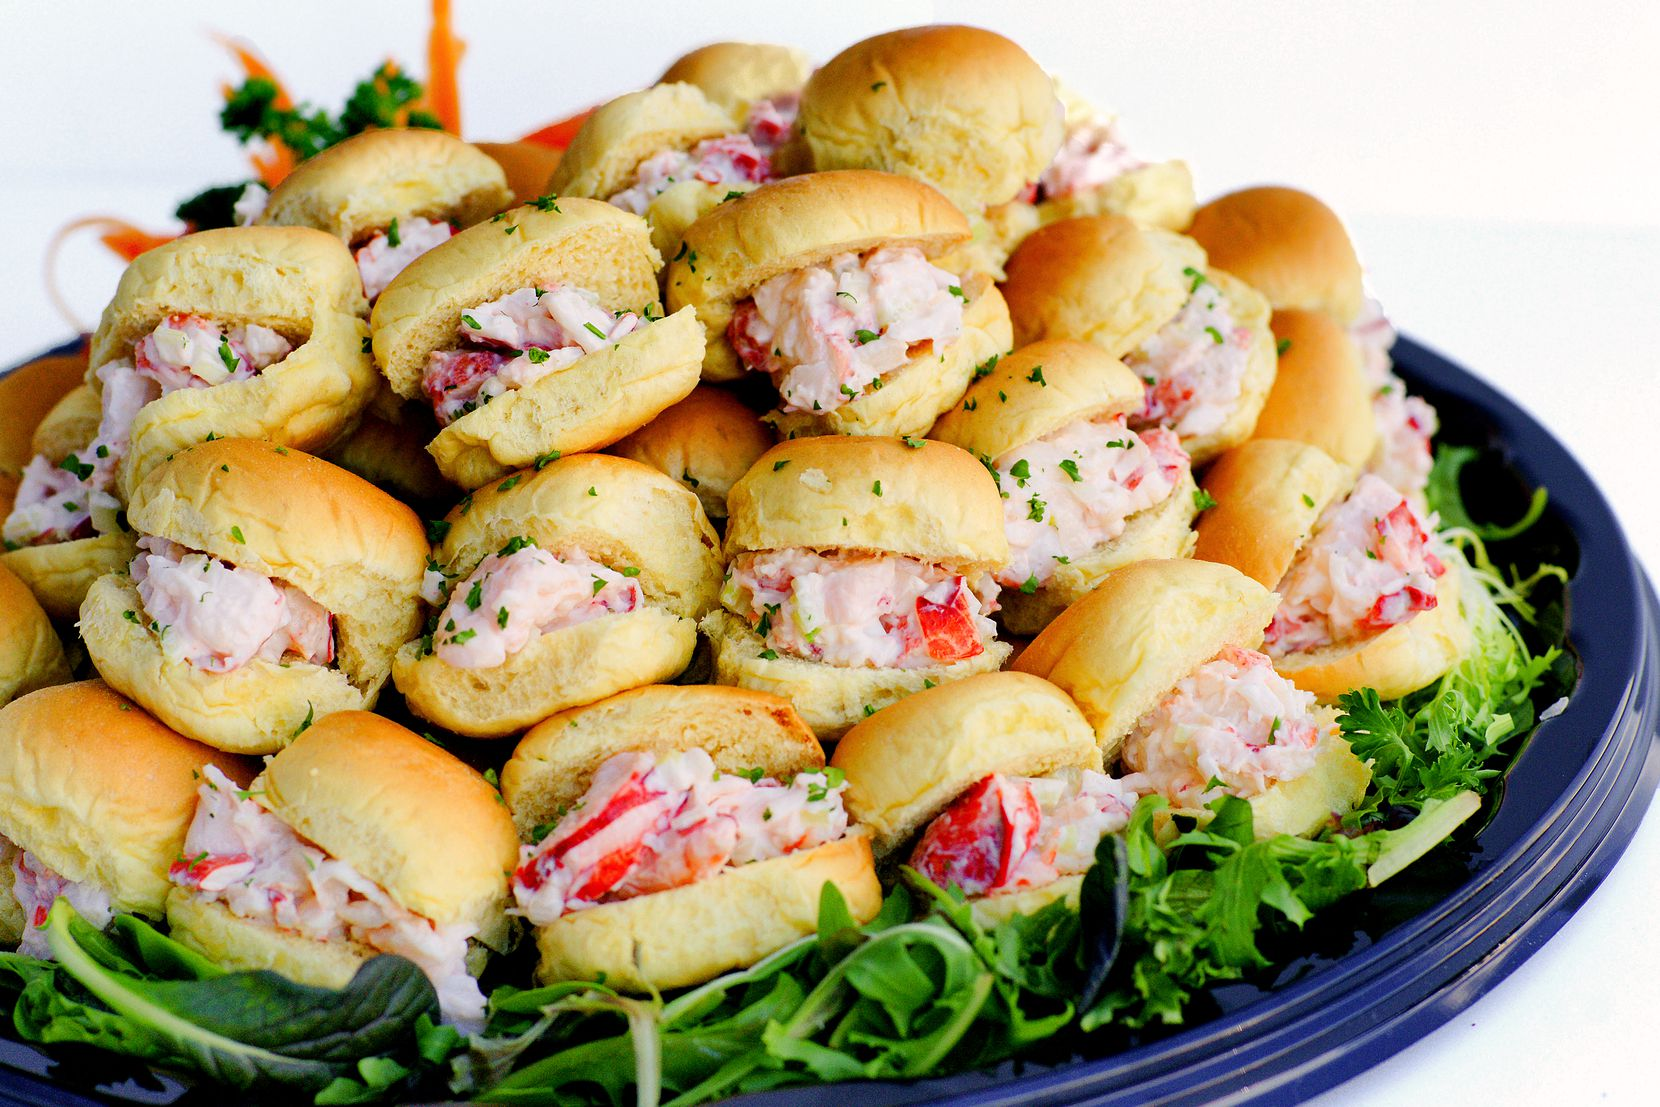 TJ's Seafood Market's Thanksgiving 2020 menu includes platters of lobster roll sliders.